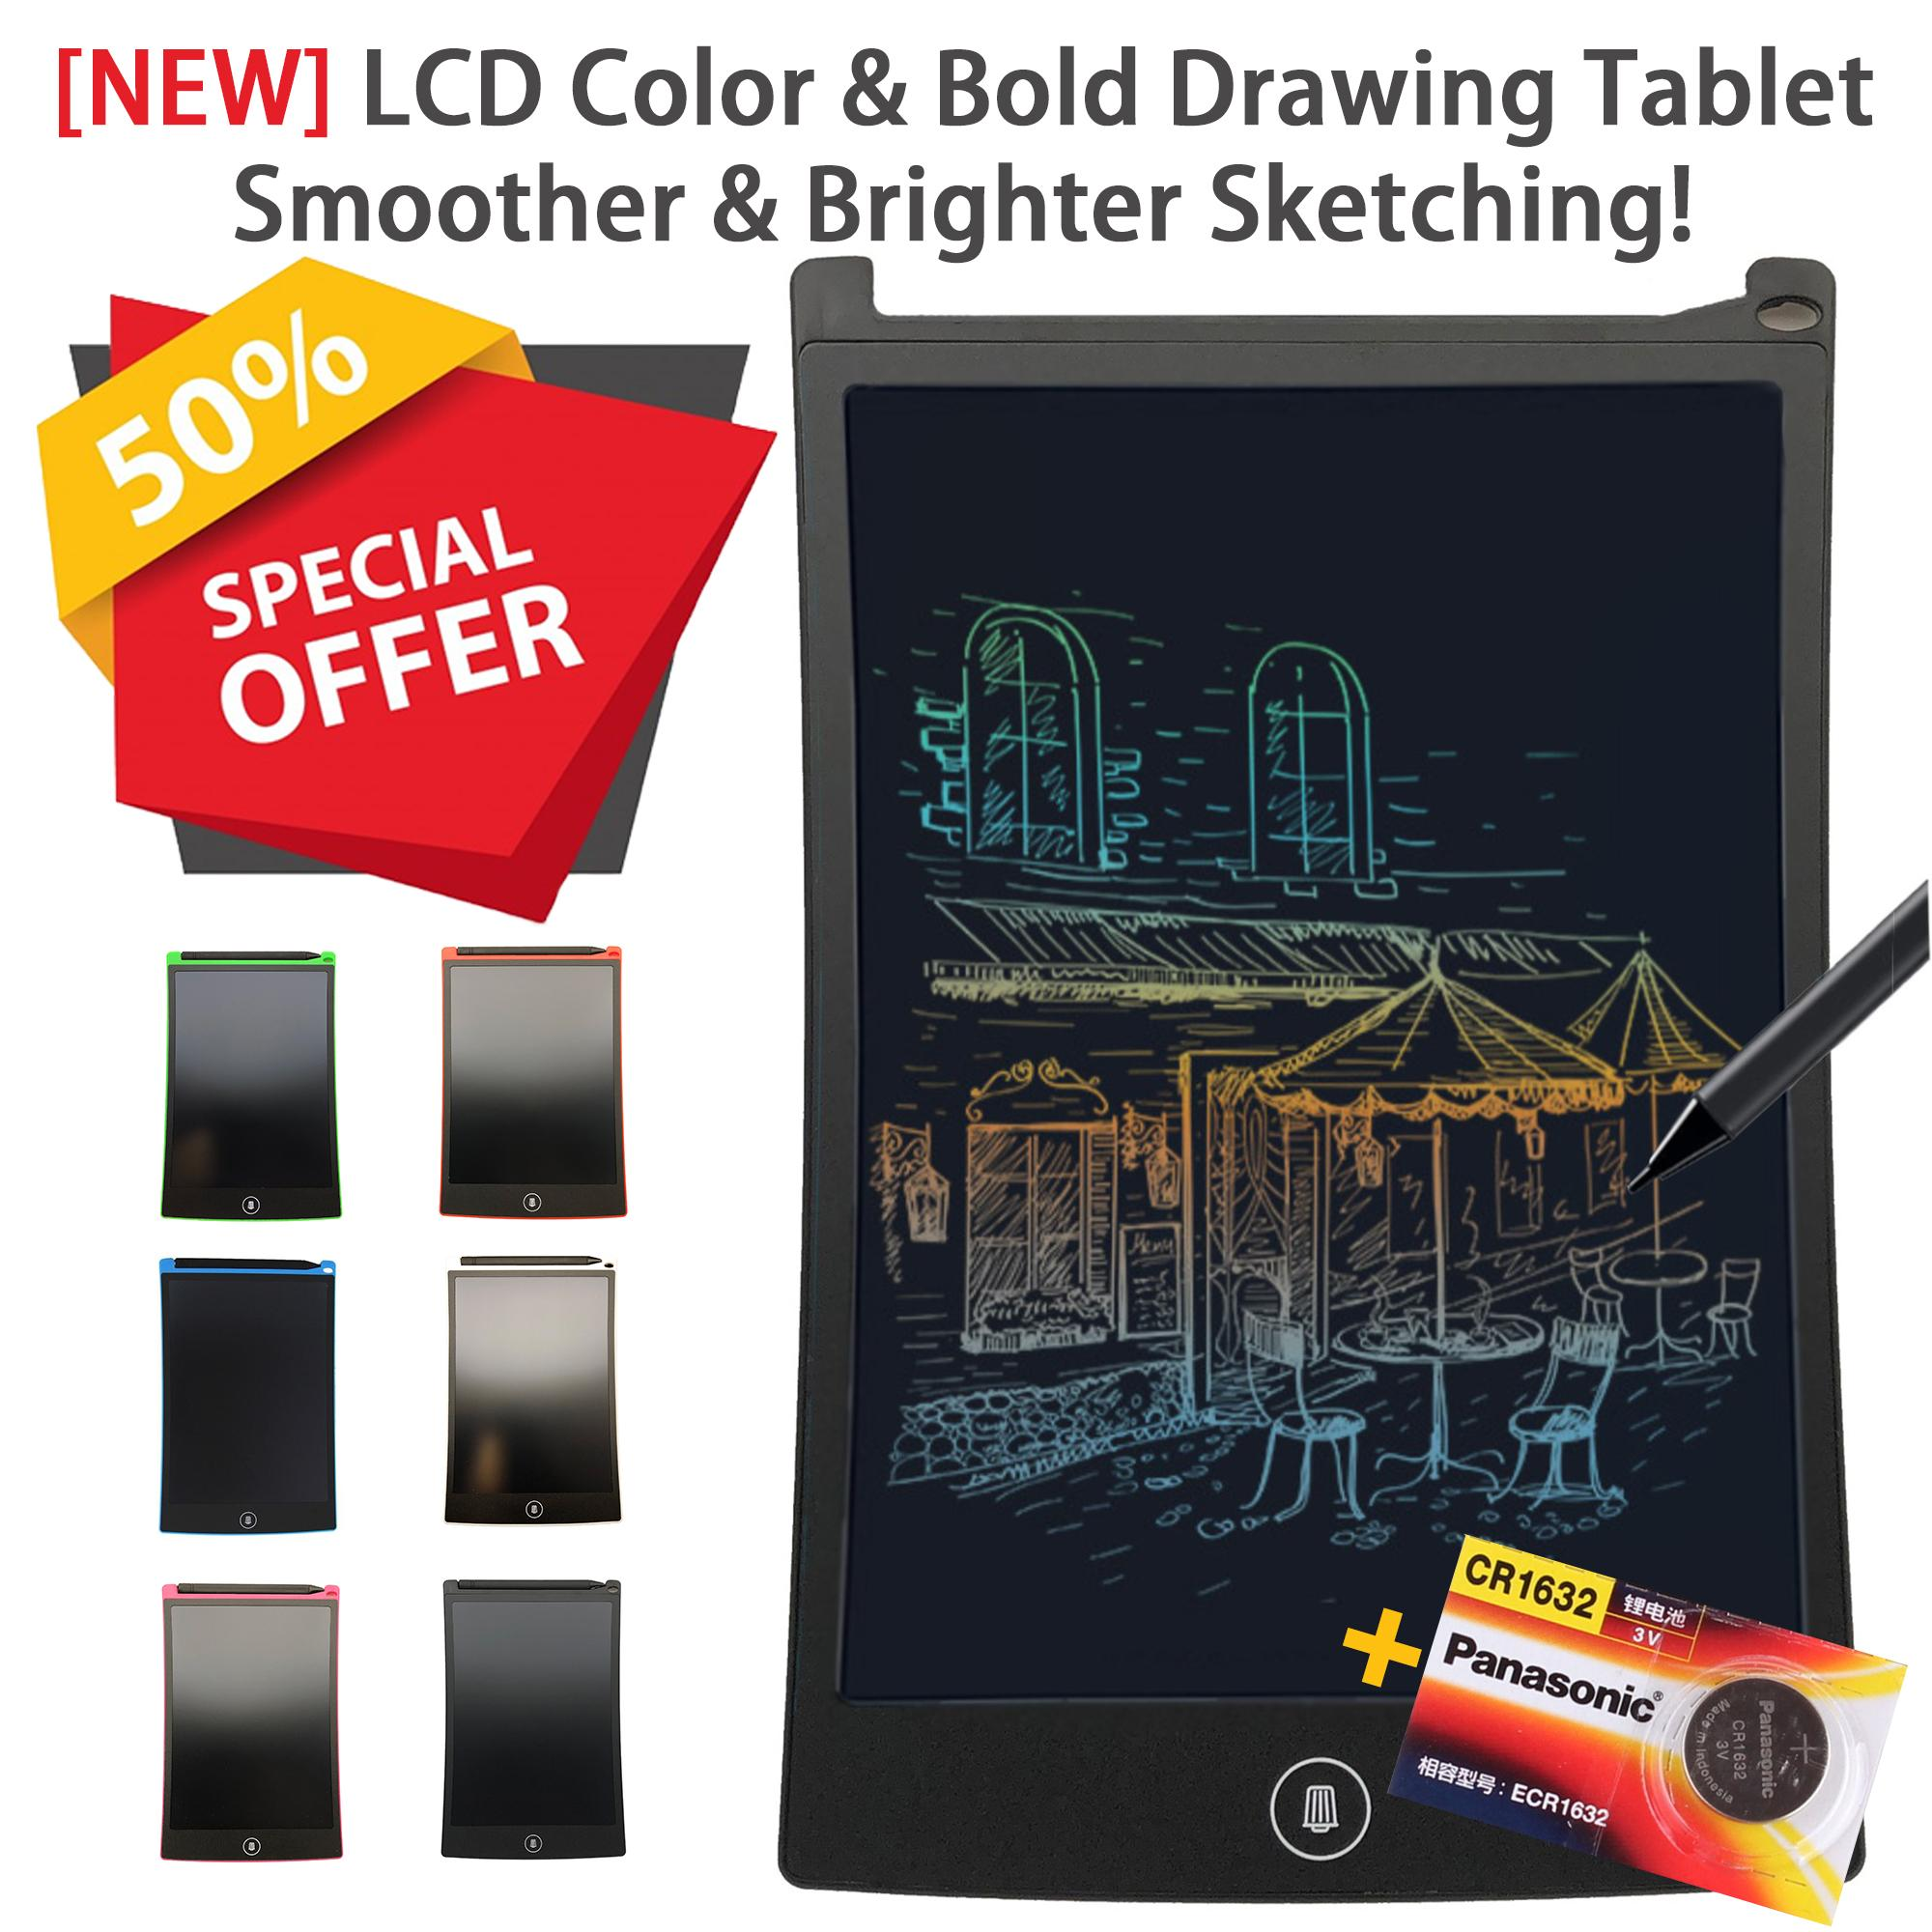 [new Model!!] 8.5 Inch Color And Bold Lcd Ultra Bright Drawing & Writing Memo Pad Tablet Boogie Board Digital Writing & Digital Drawing Graphics Board For Home Office & For Children By Trading Link.